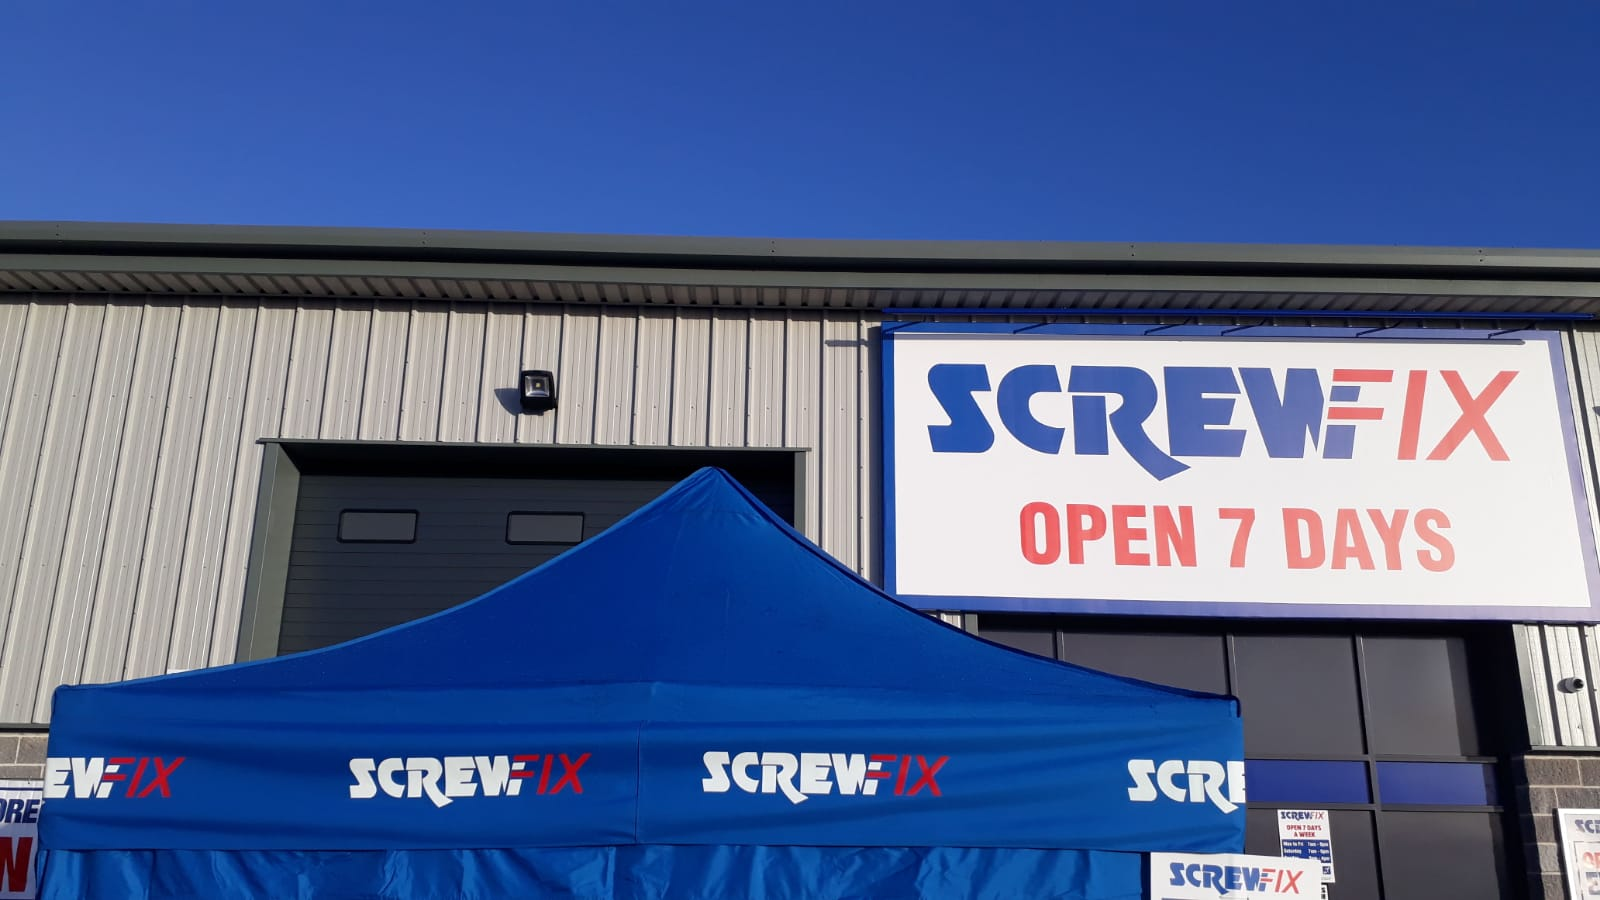 Jobs boost for Douglas – Isle of Man, as a new Screwfix store opens